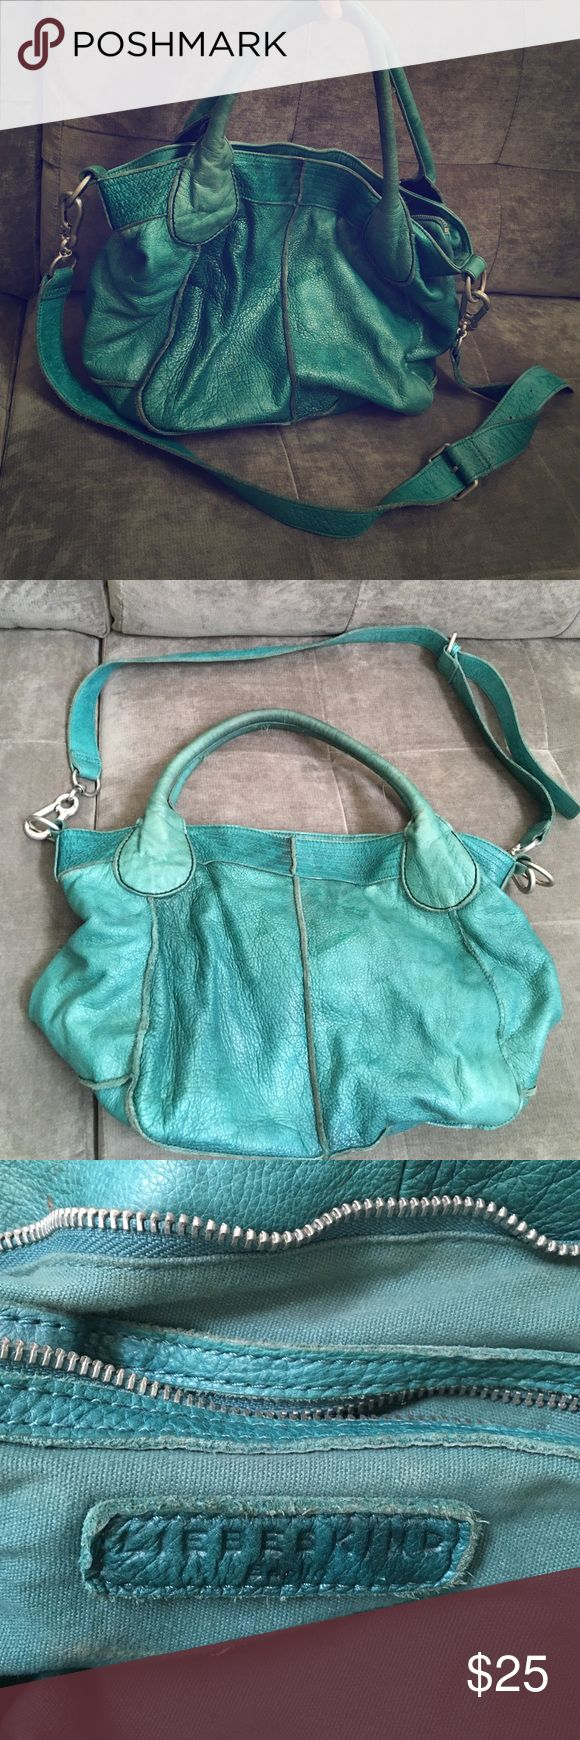 Gorgeous used Liebskind Berlin Leather Purse Have had this for years and loved every minute of it. Authentic Leather. Gorgeous color. Has its normal wear and tear on the inside of the purse. A few spots from a pen and gum. Most of it could be cleaned. Outside is a beautiful blue green color. Starting to fade from being in the sun. Soft leather handles as well as a detachable shoulder strap. Liebeskind Bags Hobos